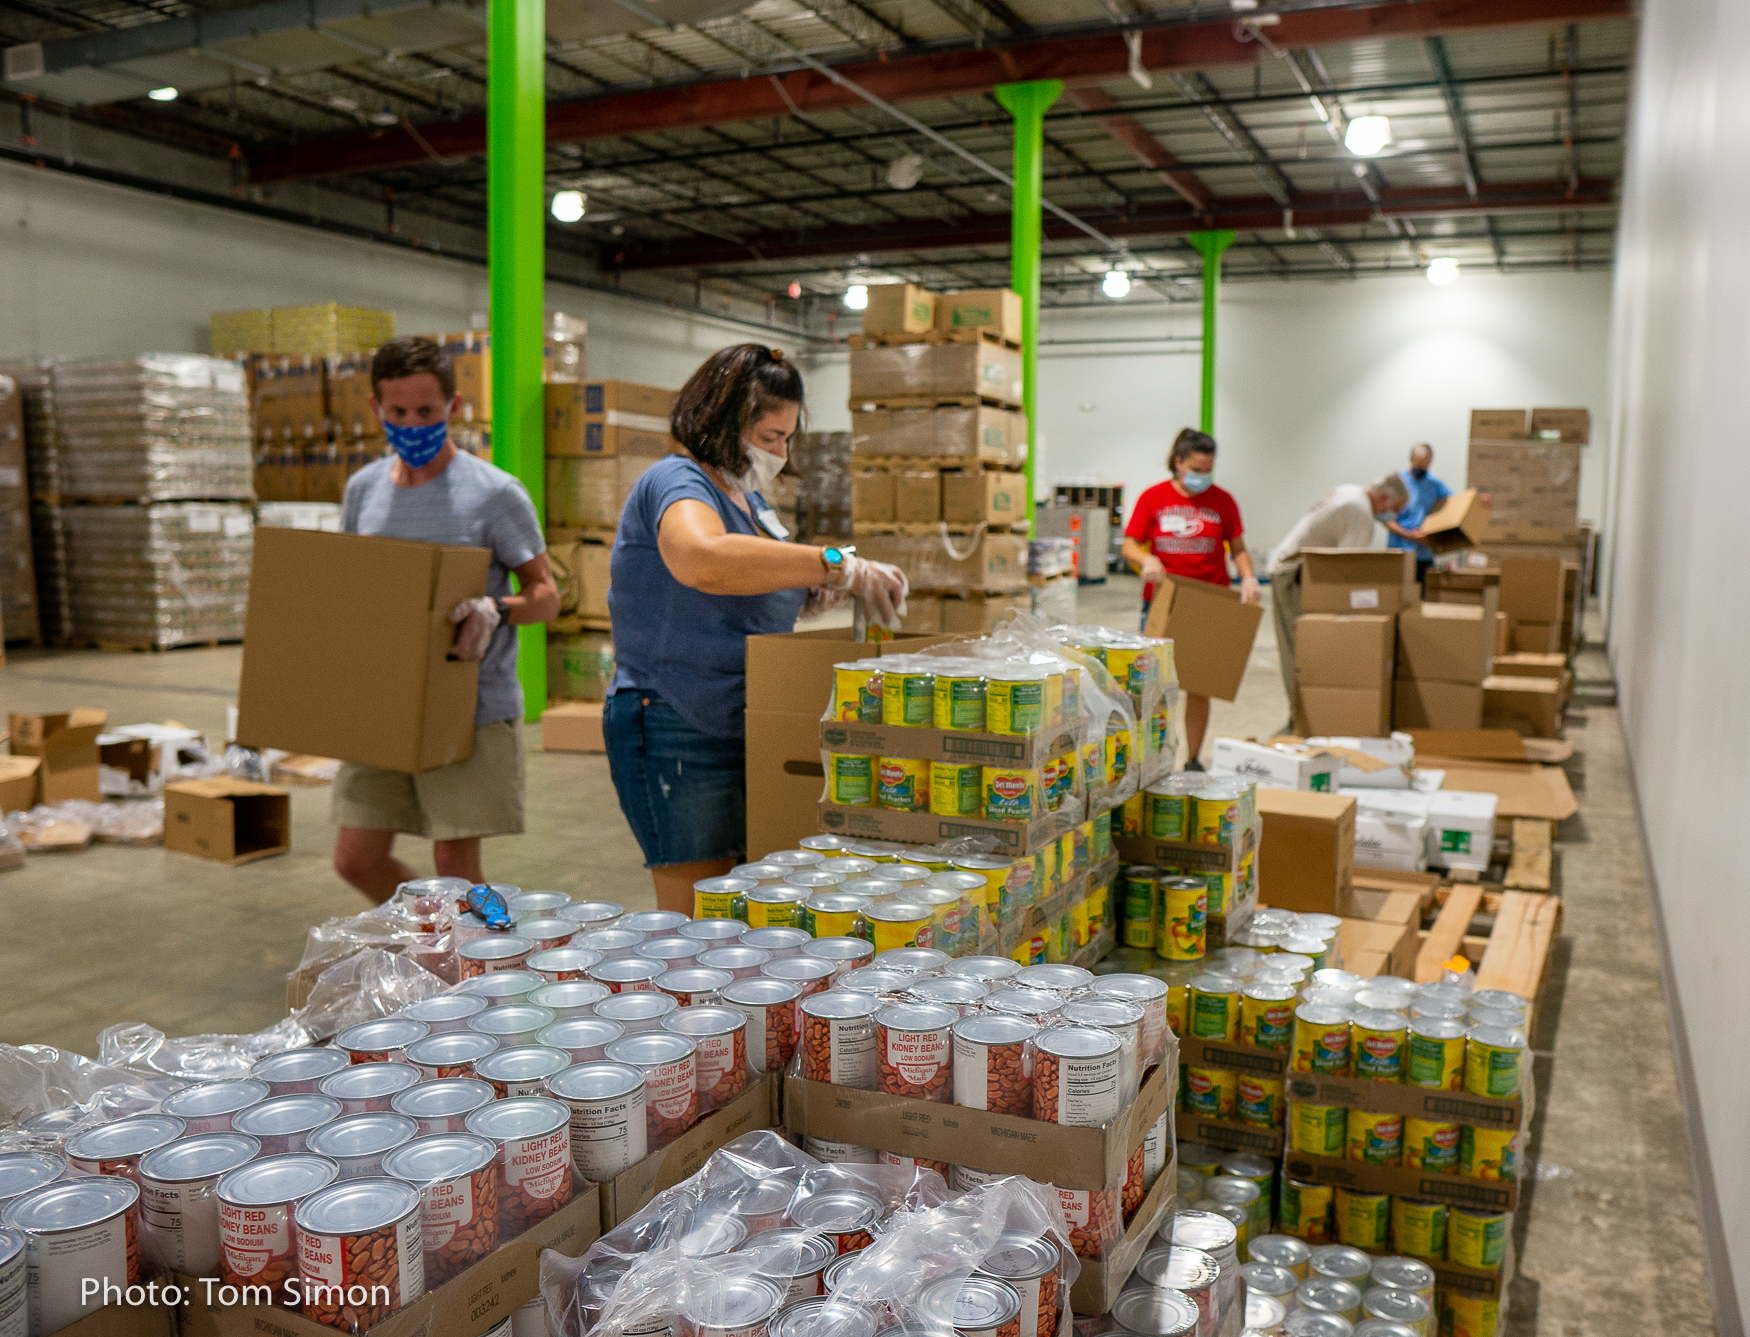 With the onset of the pandemic, the need for food for the hungry is greater than ever - 1 in 5 adults, 1 in 4 children are food insecure. Join us in Feeding the Carolinas!